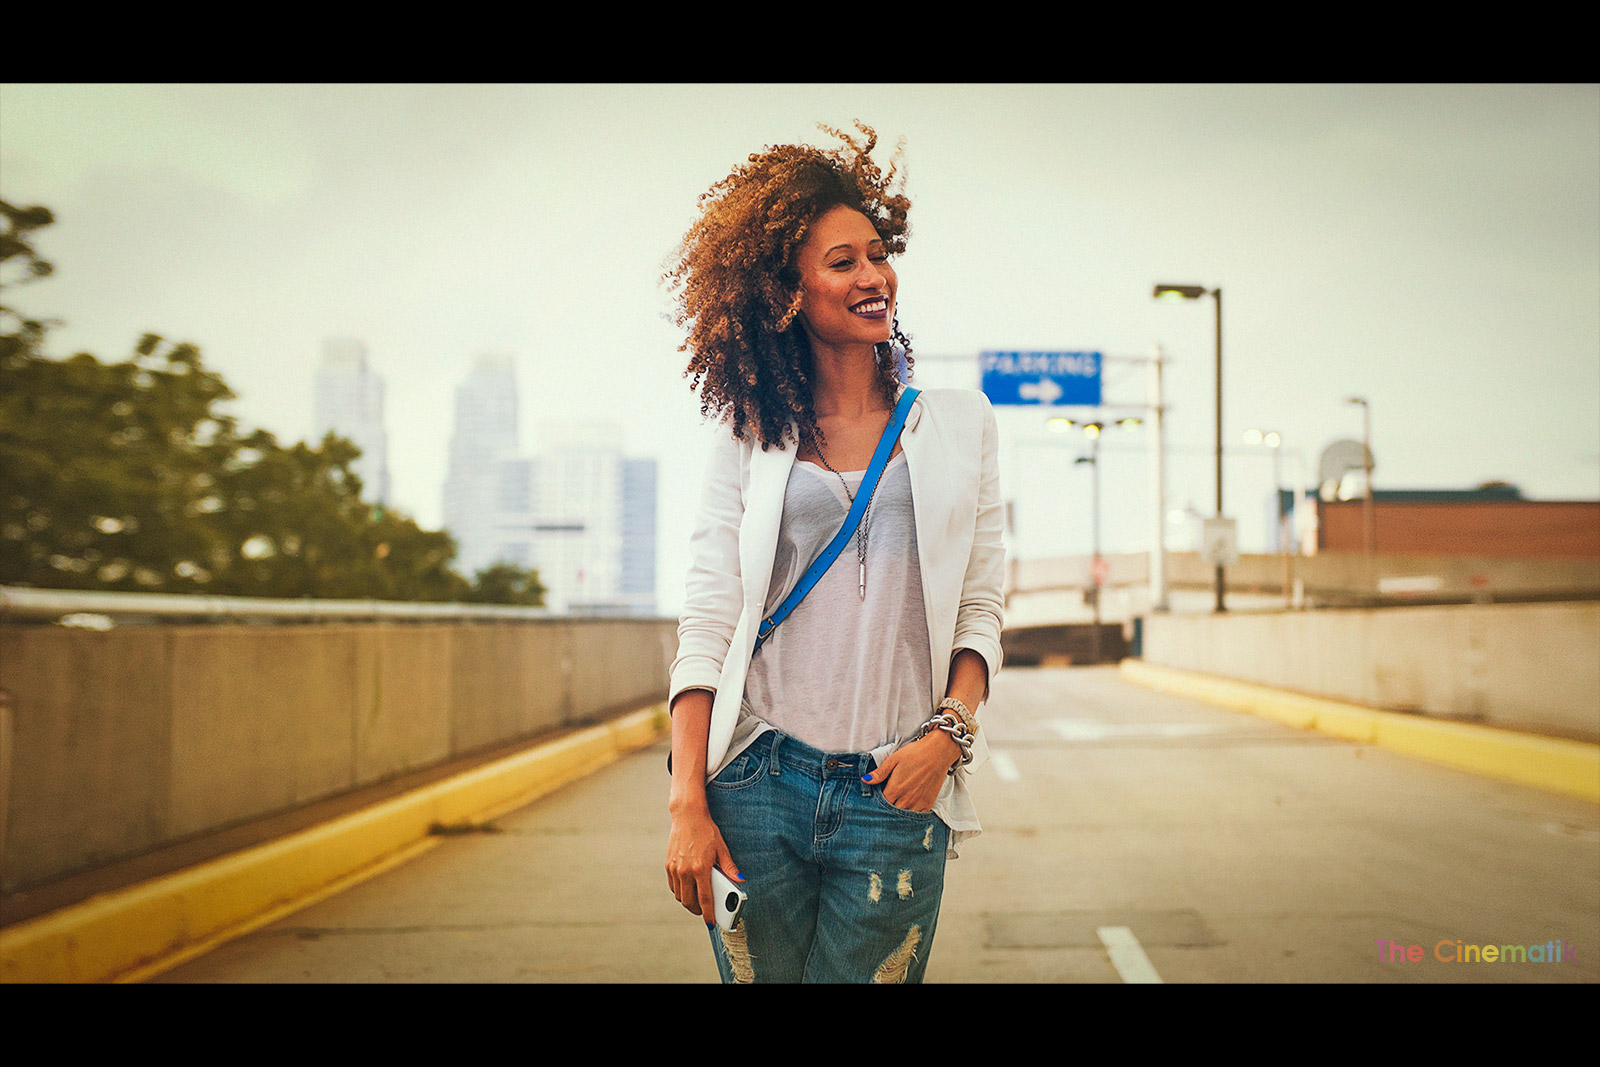 Elaine Welteroth cinematic photograph at New York Fashion Week by Kamal Lahmadi